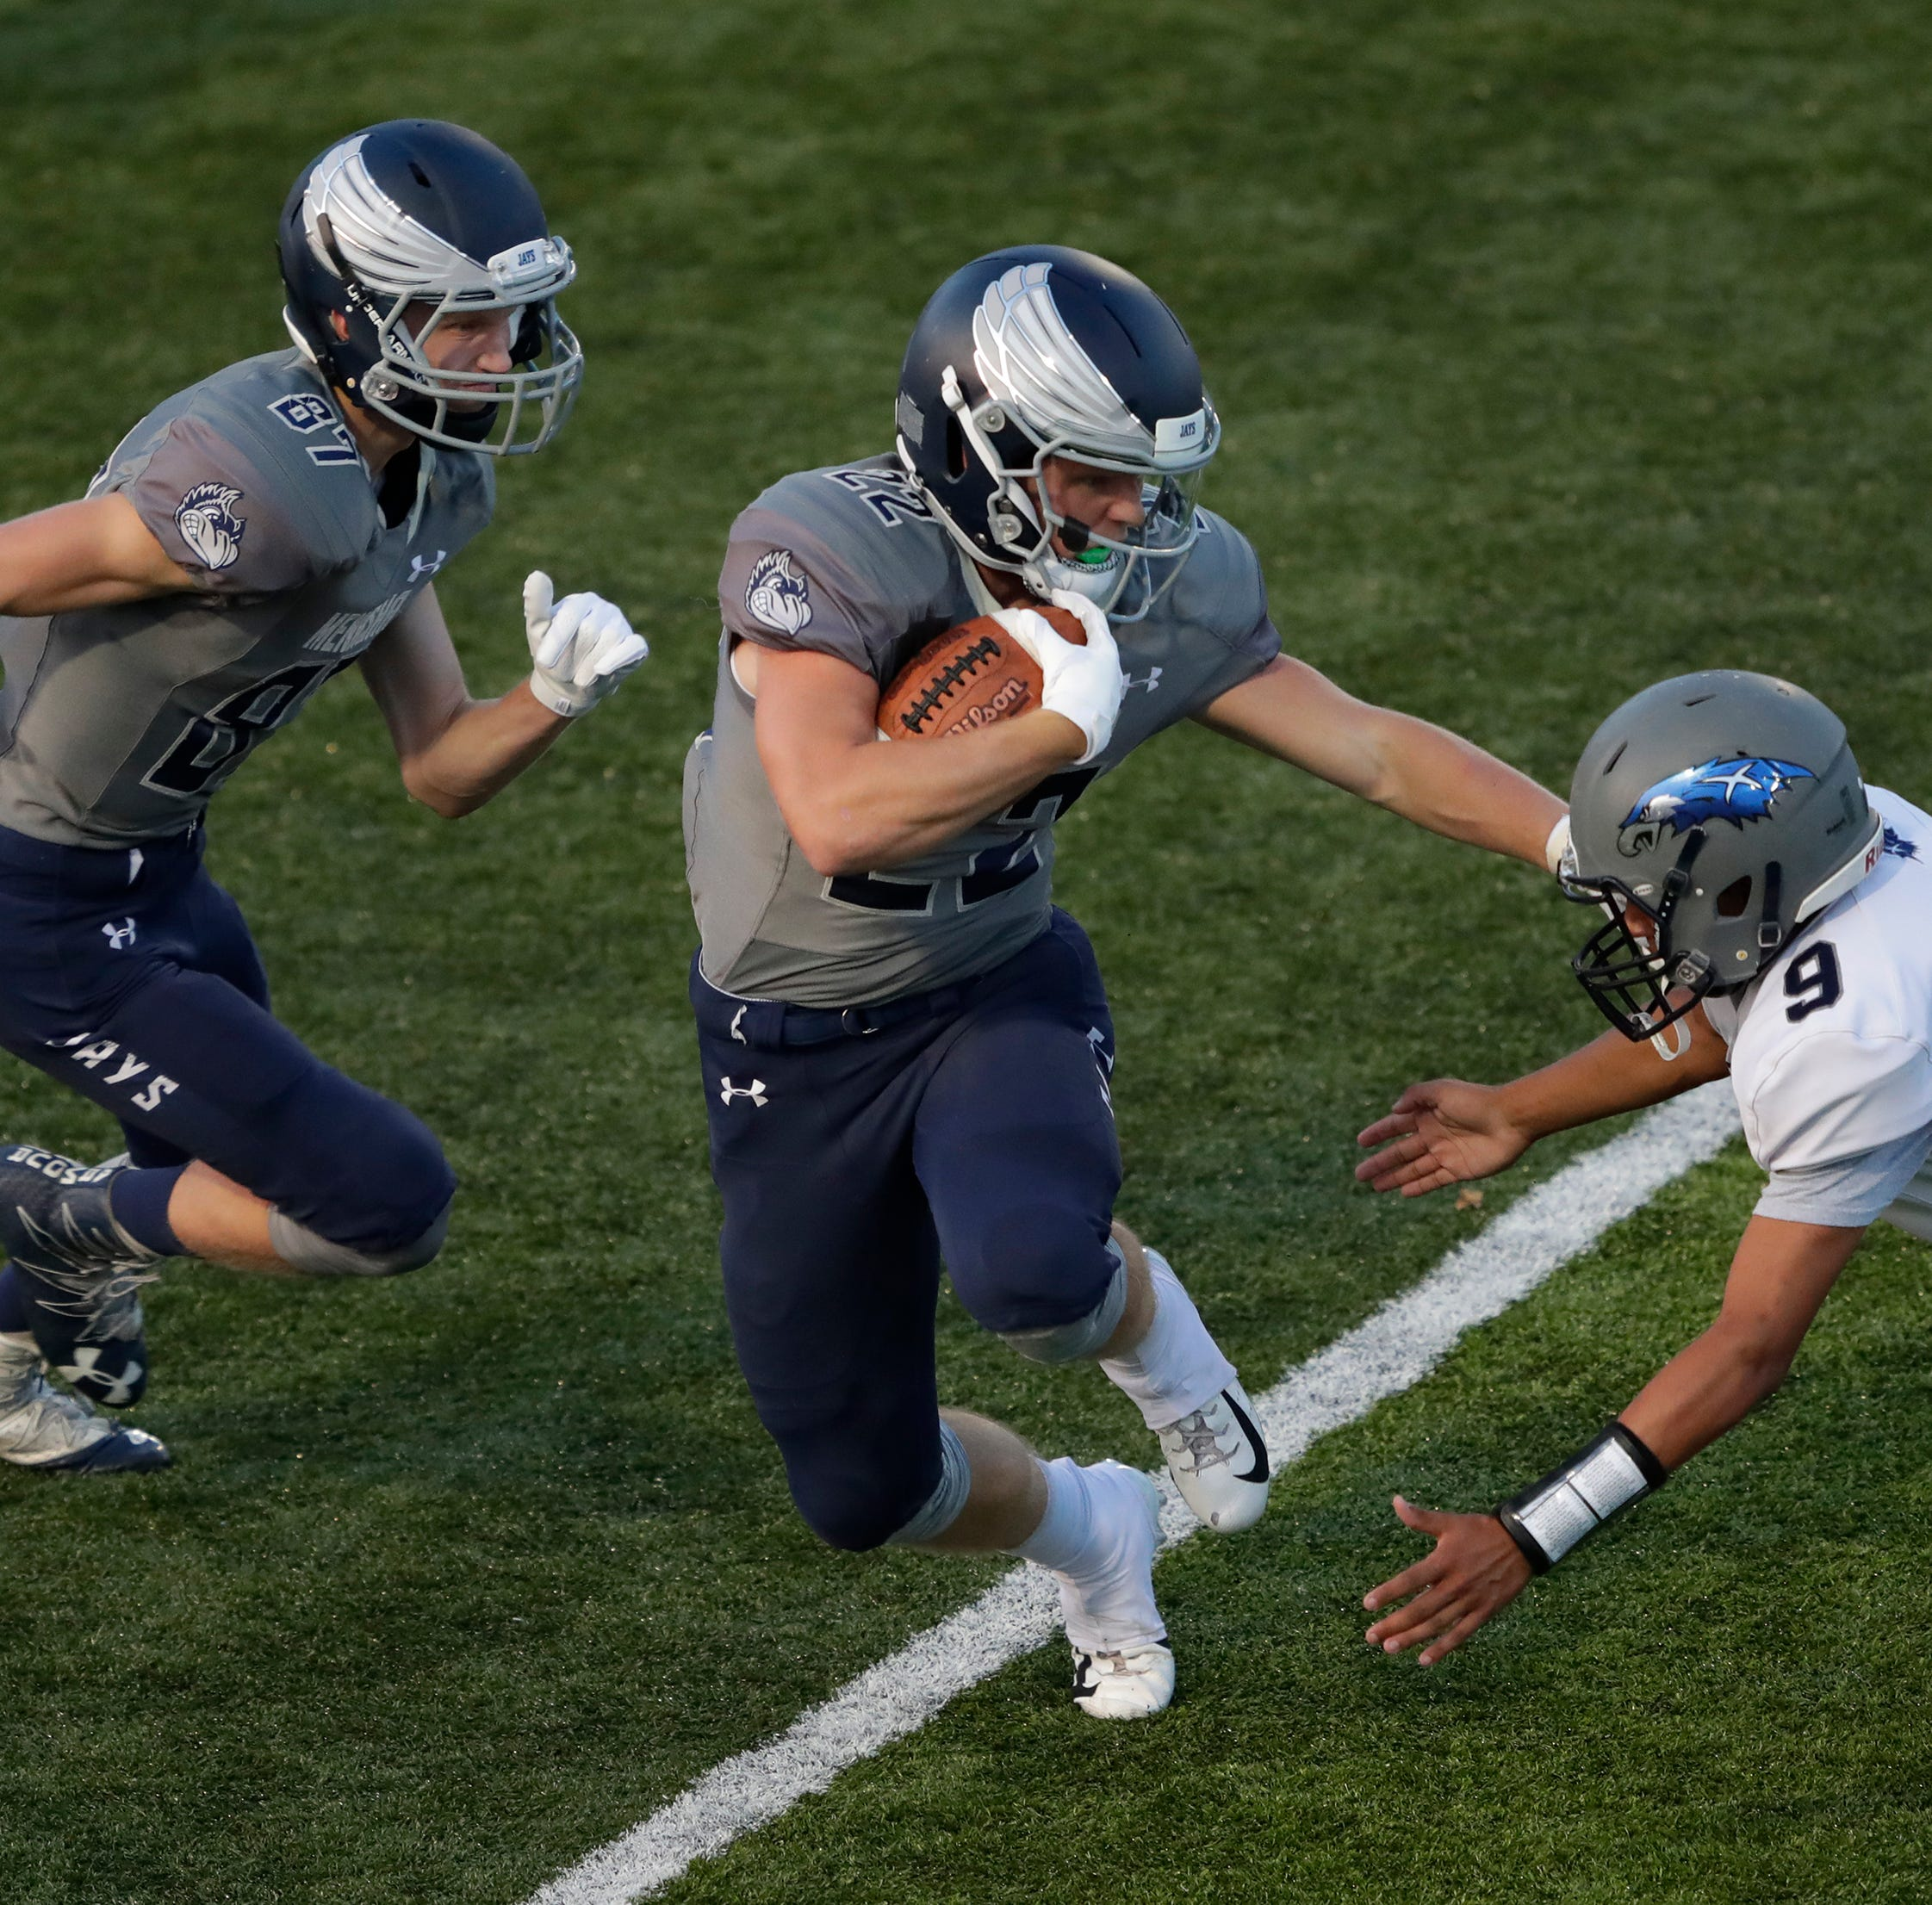 Menasha High School's Tyler Roehl (22) stiff arms Xavier High School's Frankie Rasmus (9) for a gain during their football game Friday, August 31, 2018, at Calder Stadium in Menasha, Wis. 